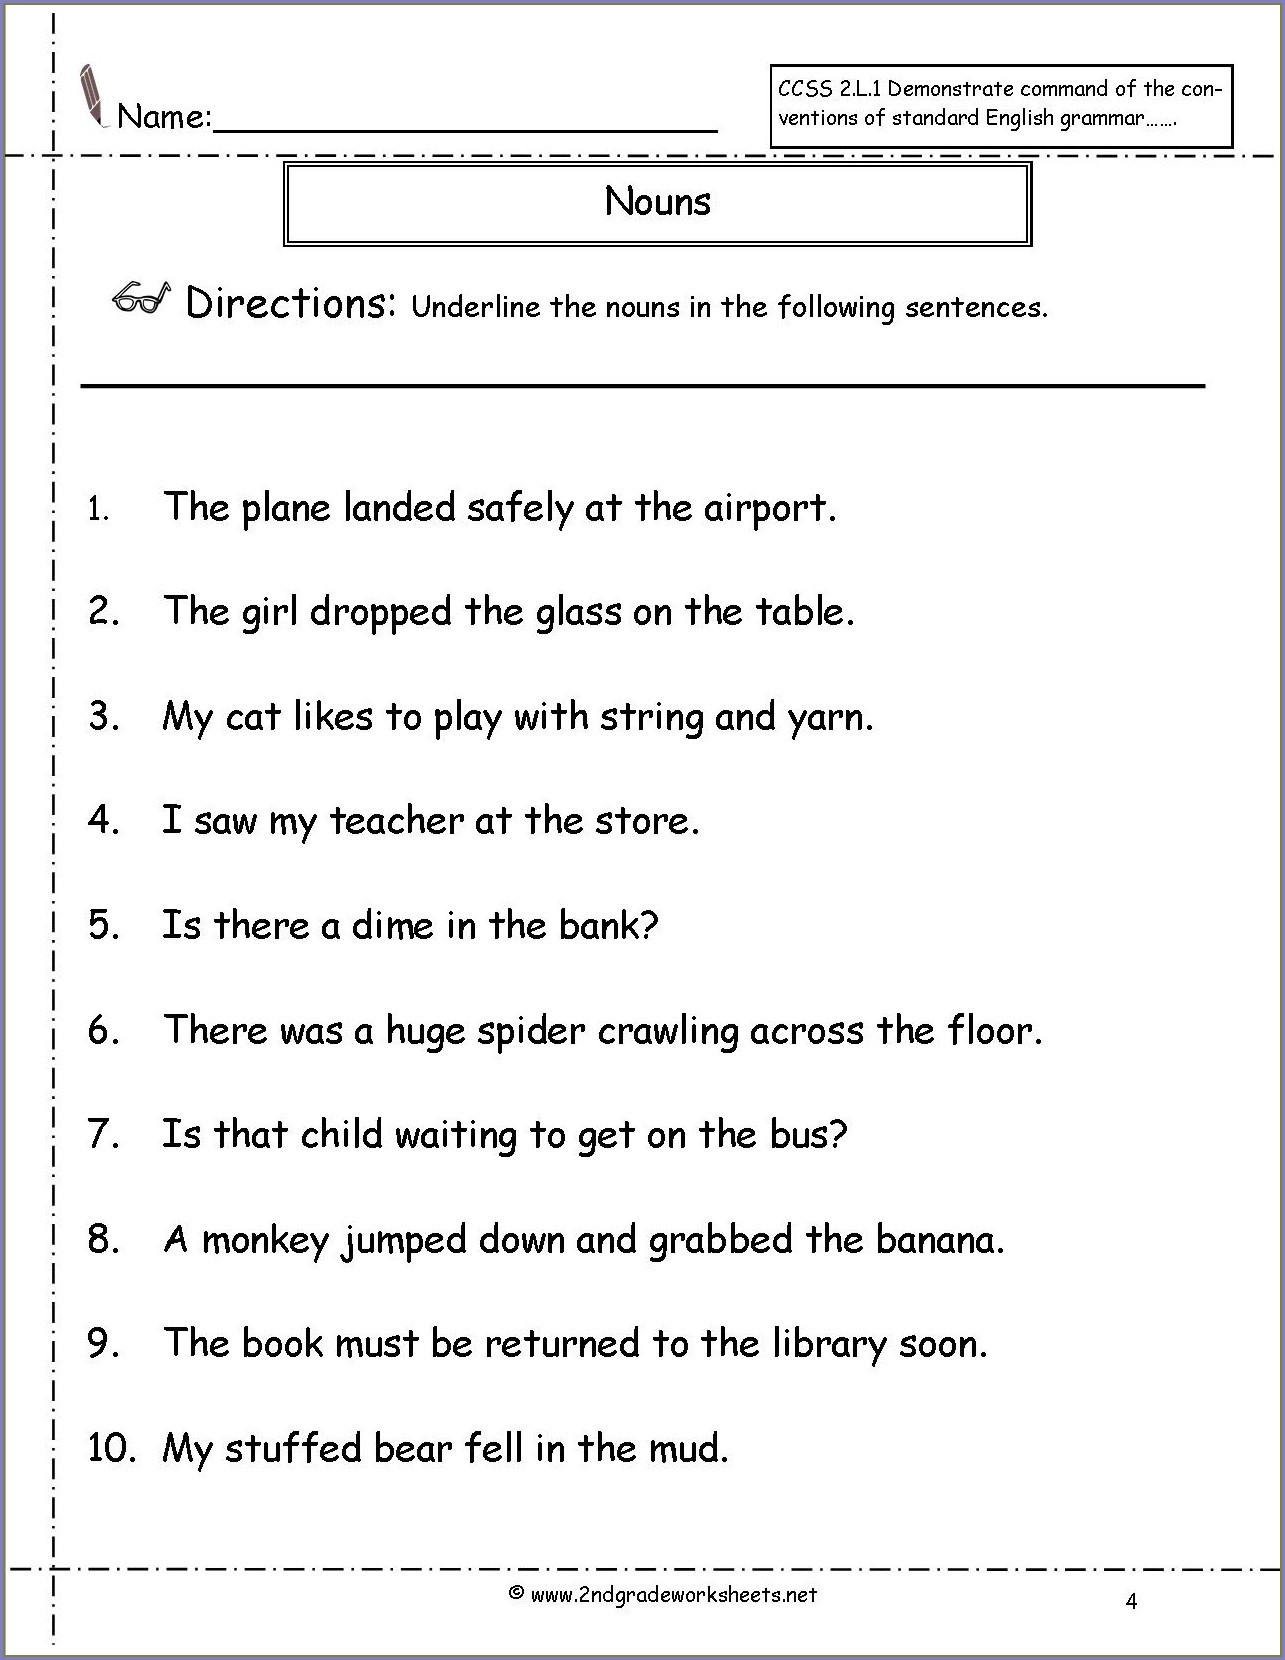 hight resolution of Reflexive Pronouns Worksheet 2nd Grade   Printable Worksheets and  Activities for Teachers